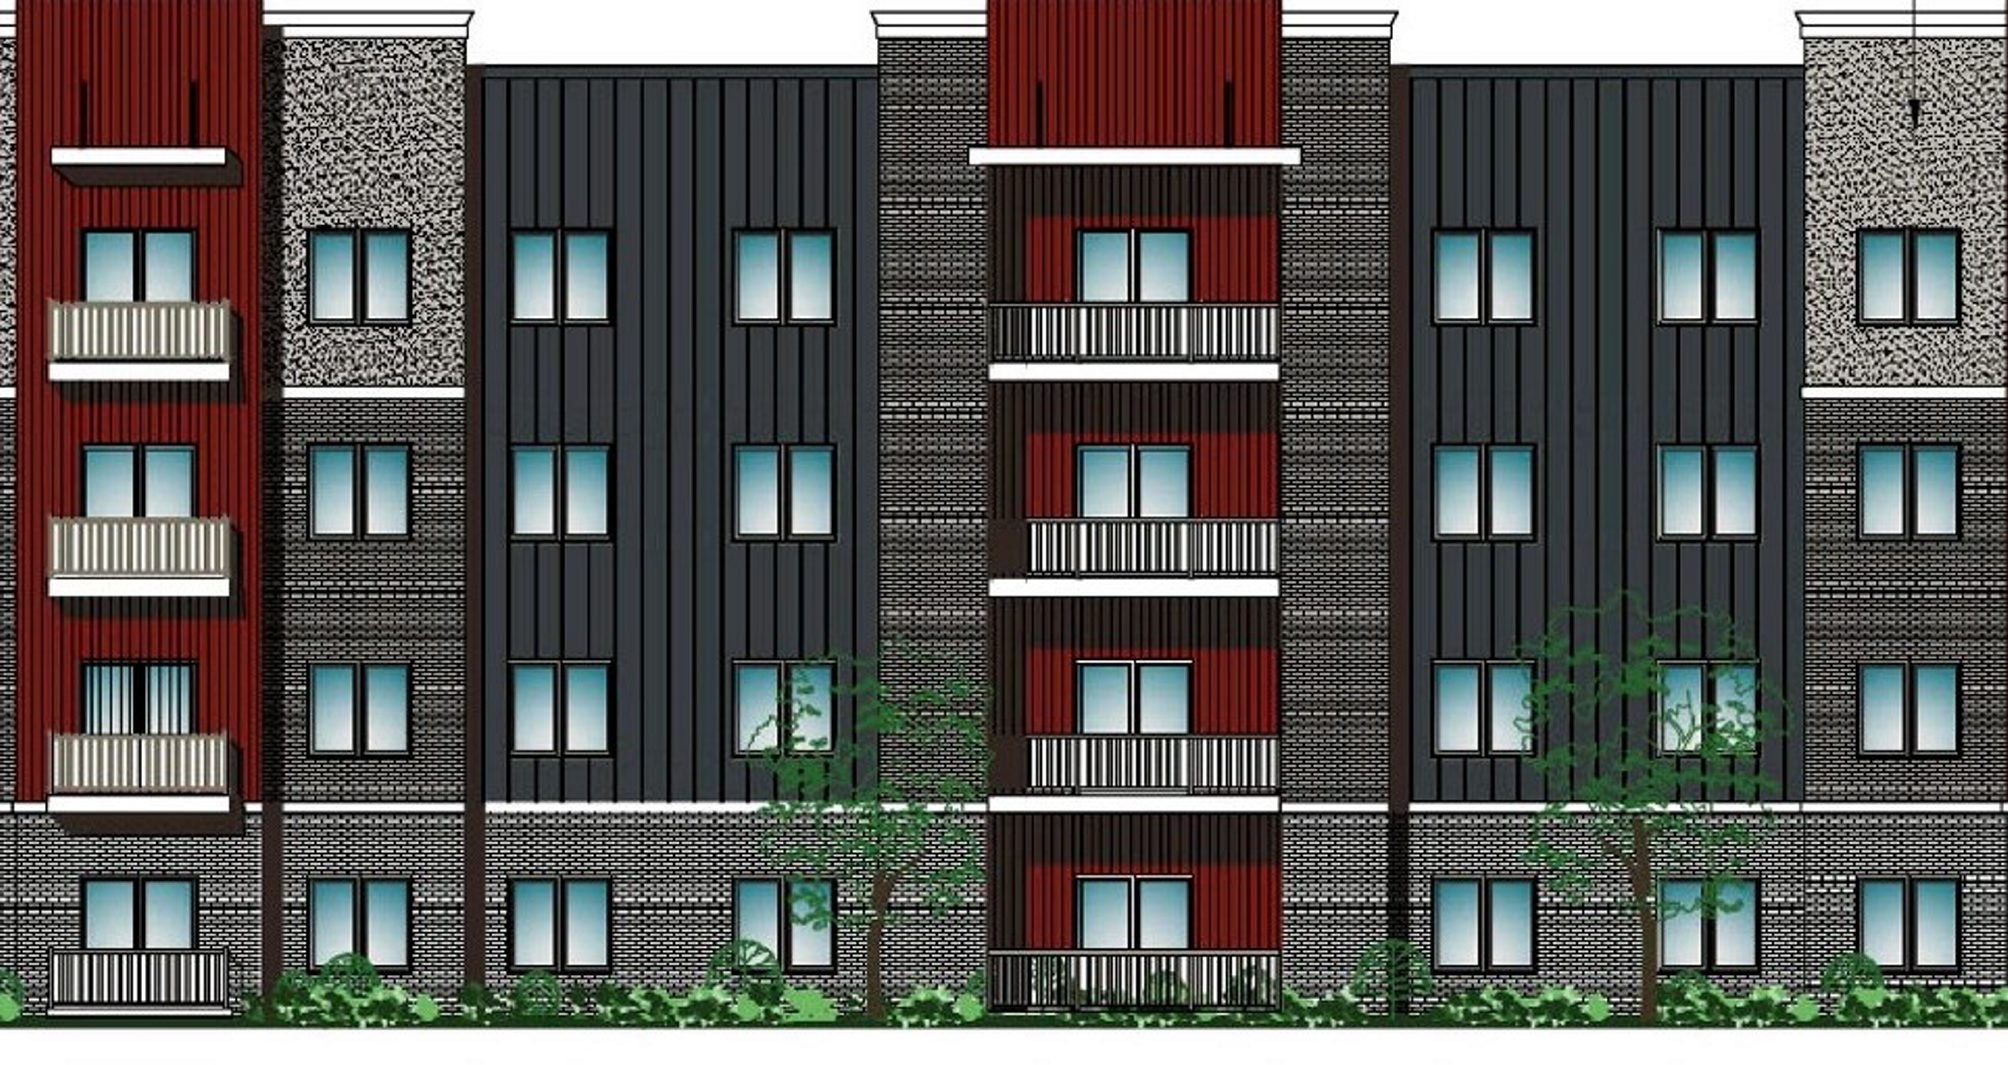 Detail of architect's rendering of student housing planned for 11-acre parcel on Forest Avenue and Danforth Road.